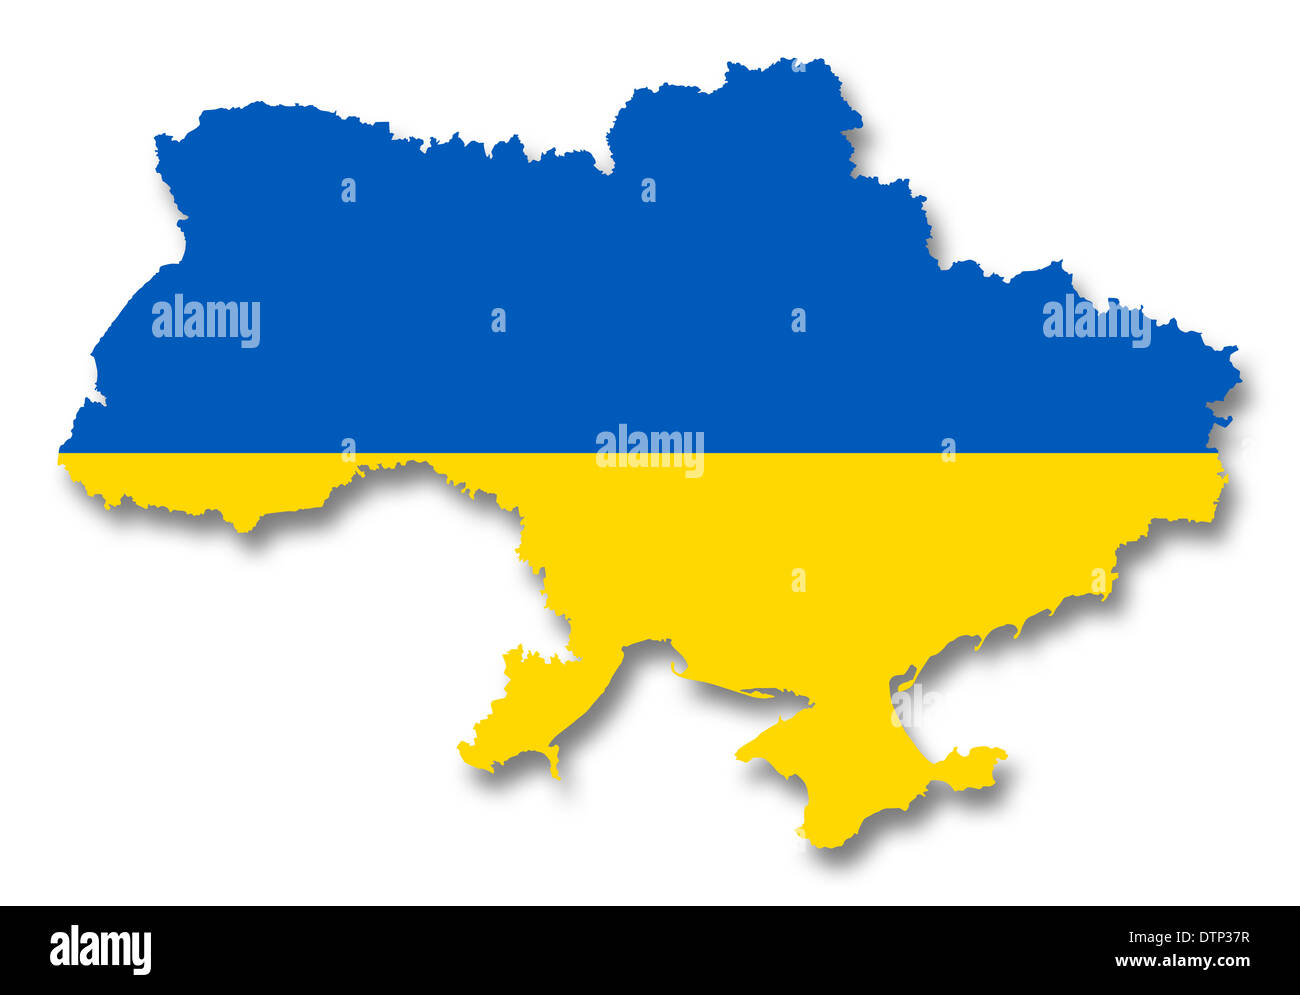 Map and flag of Ukraine - Stock Image